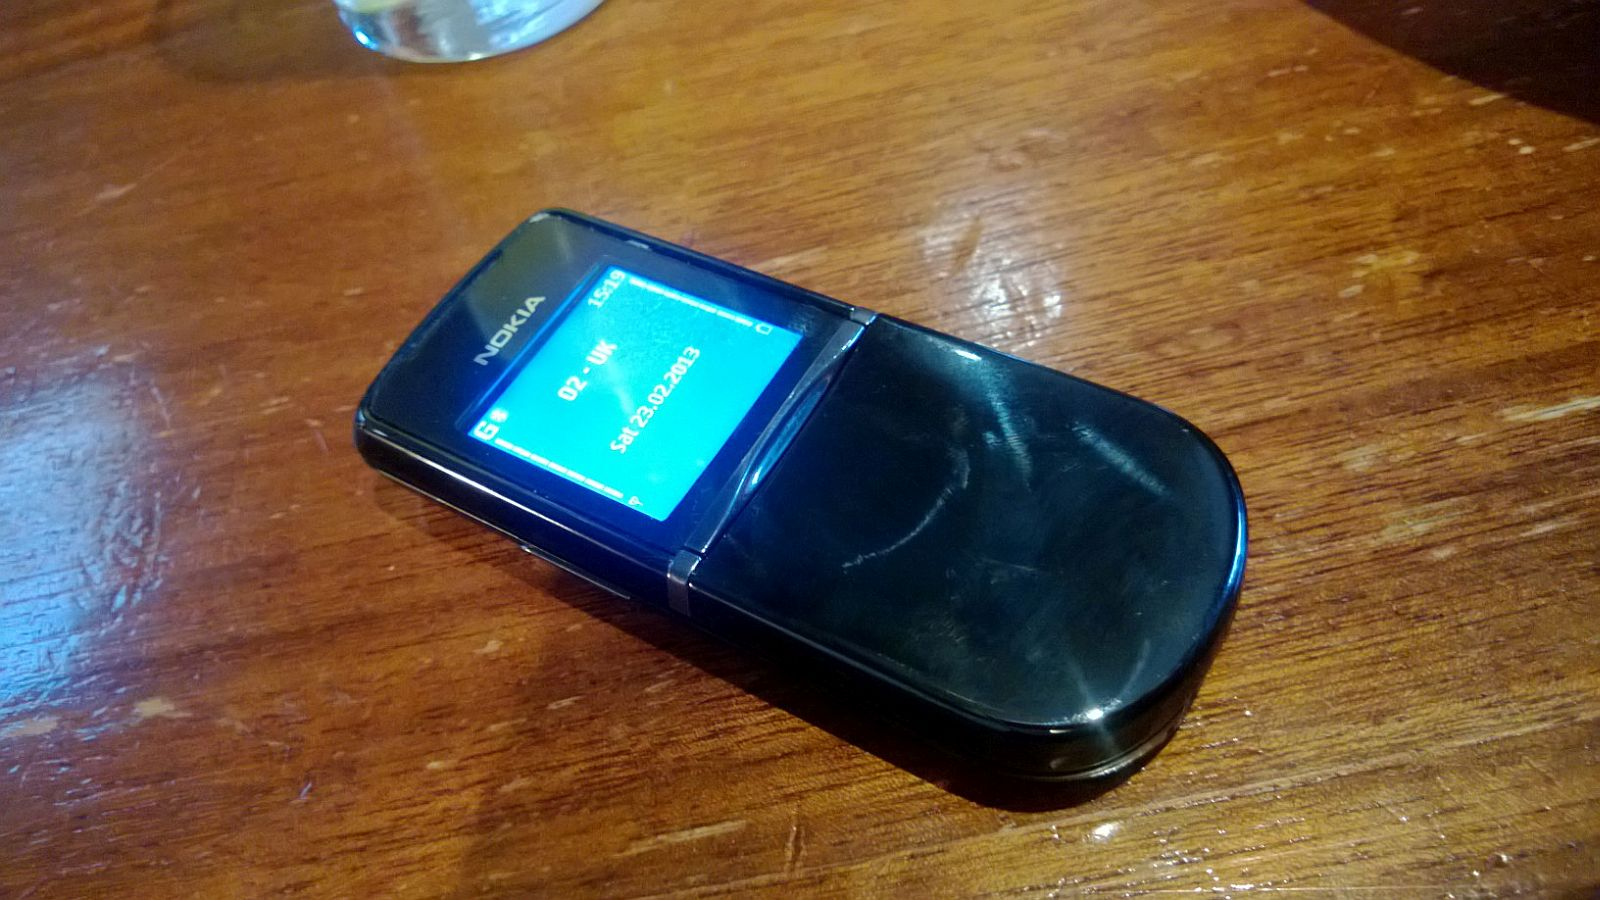 Nokia 8800 whatleydude